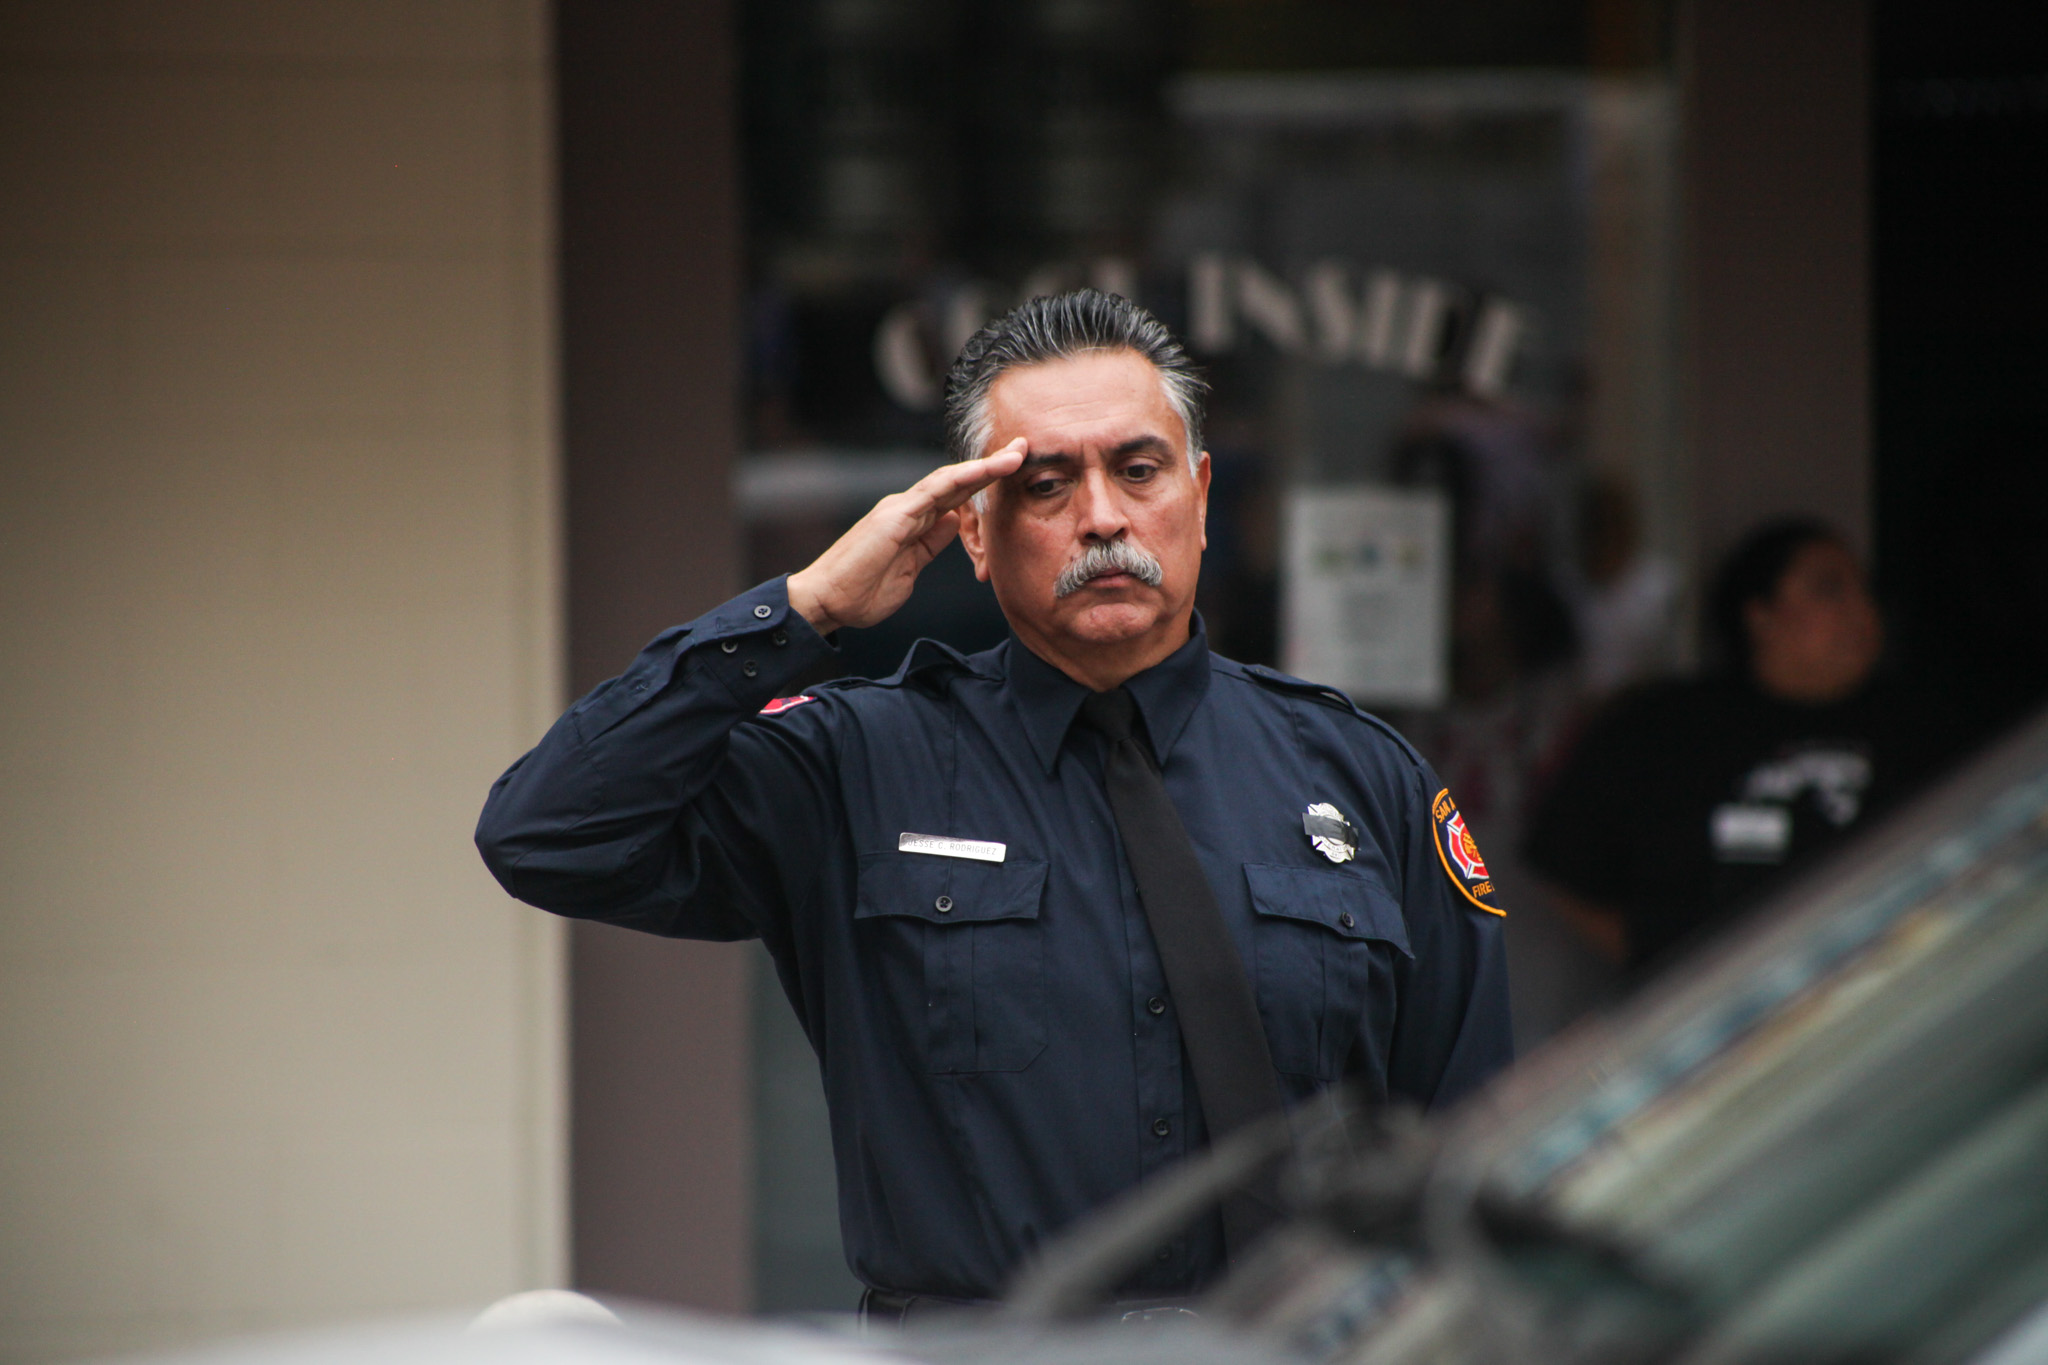 San Antonio firefighter pays tribute to Scott Deem at the family funeral procession.